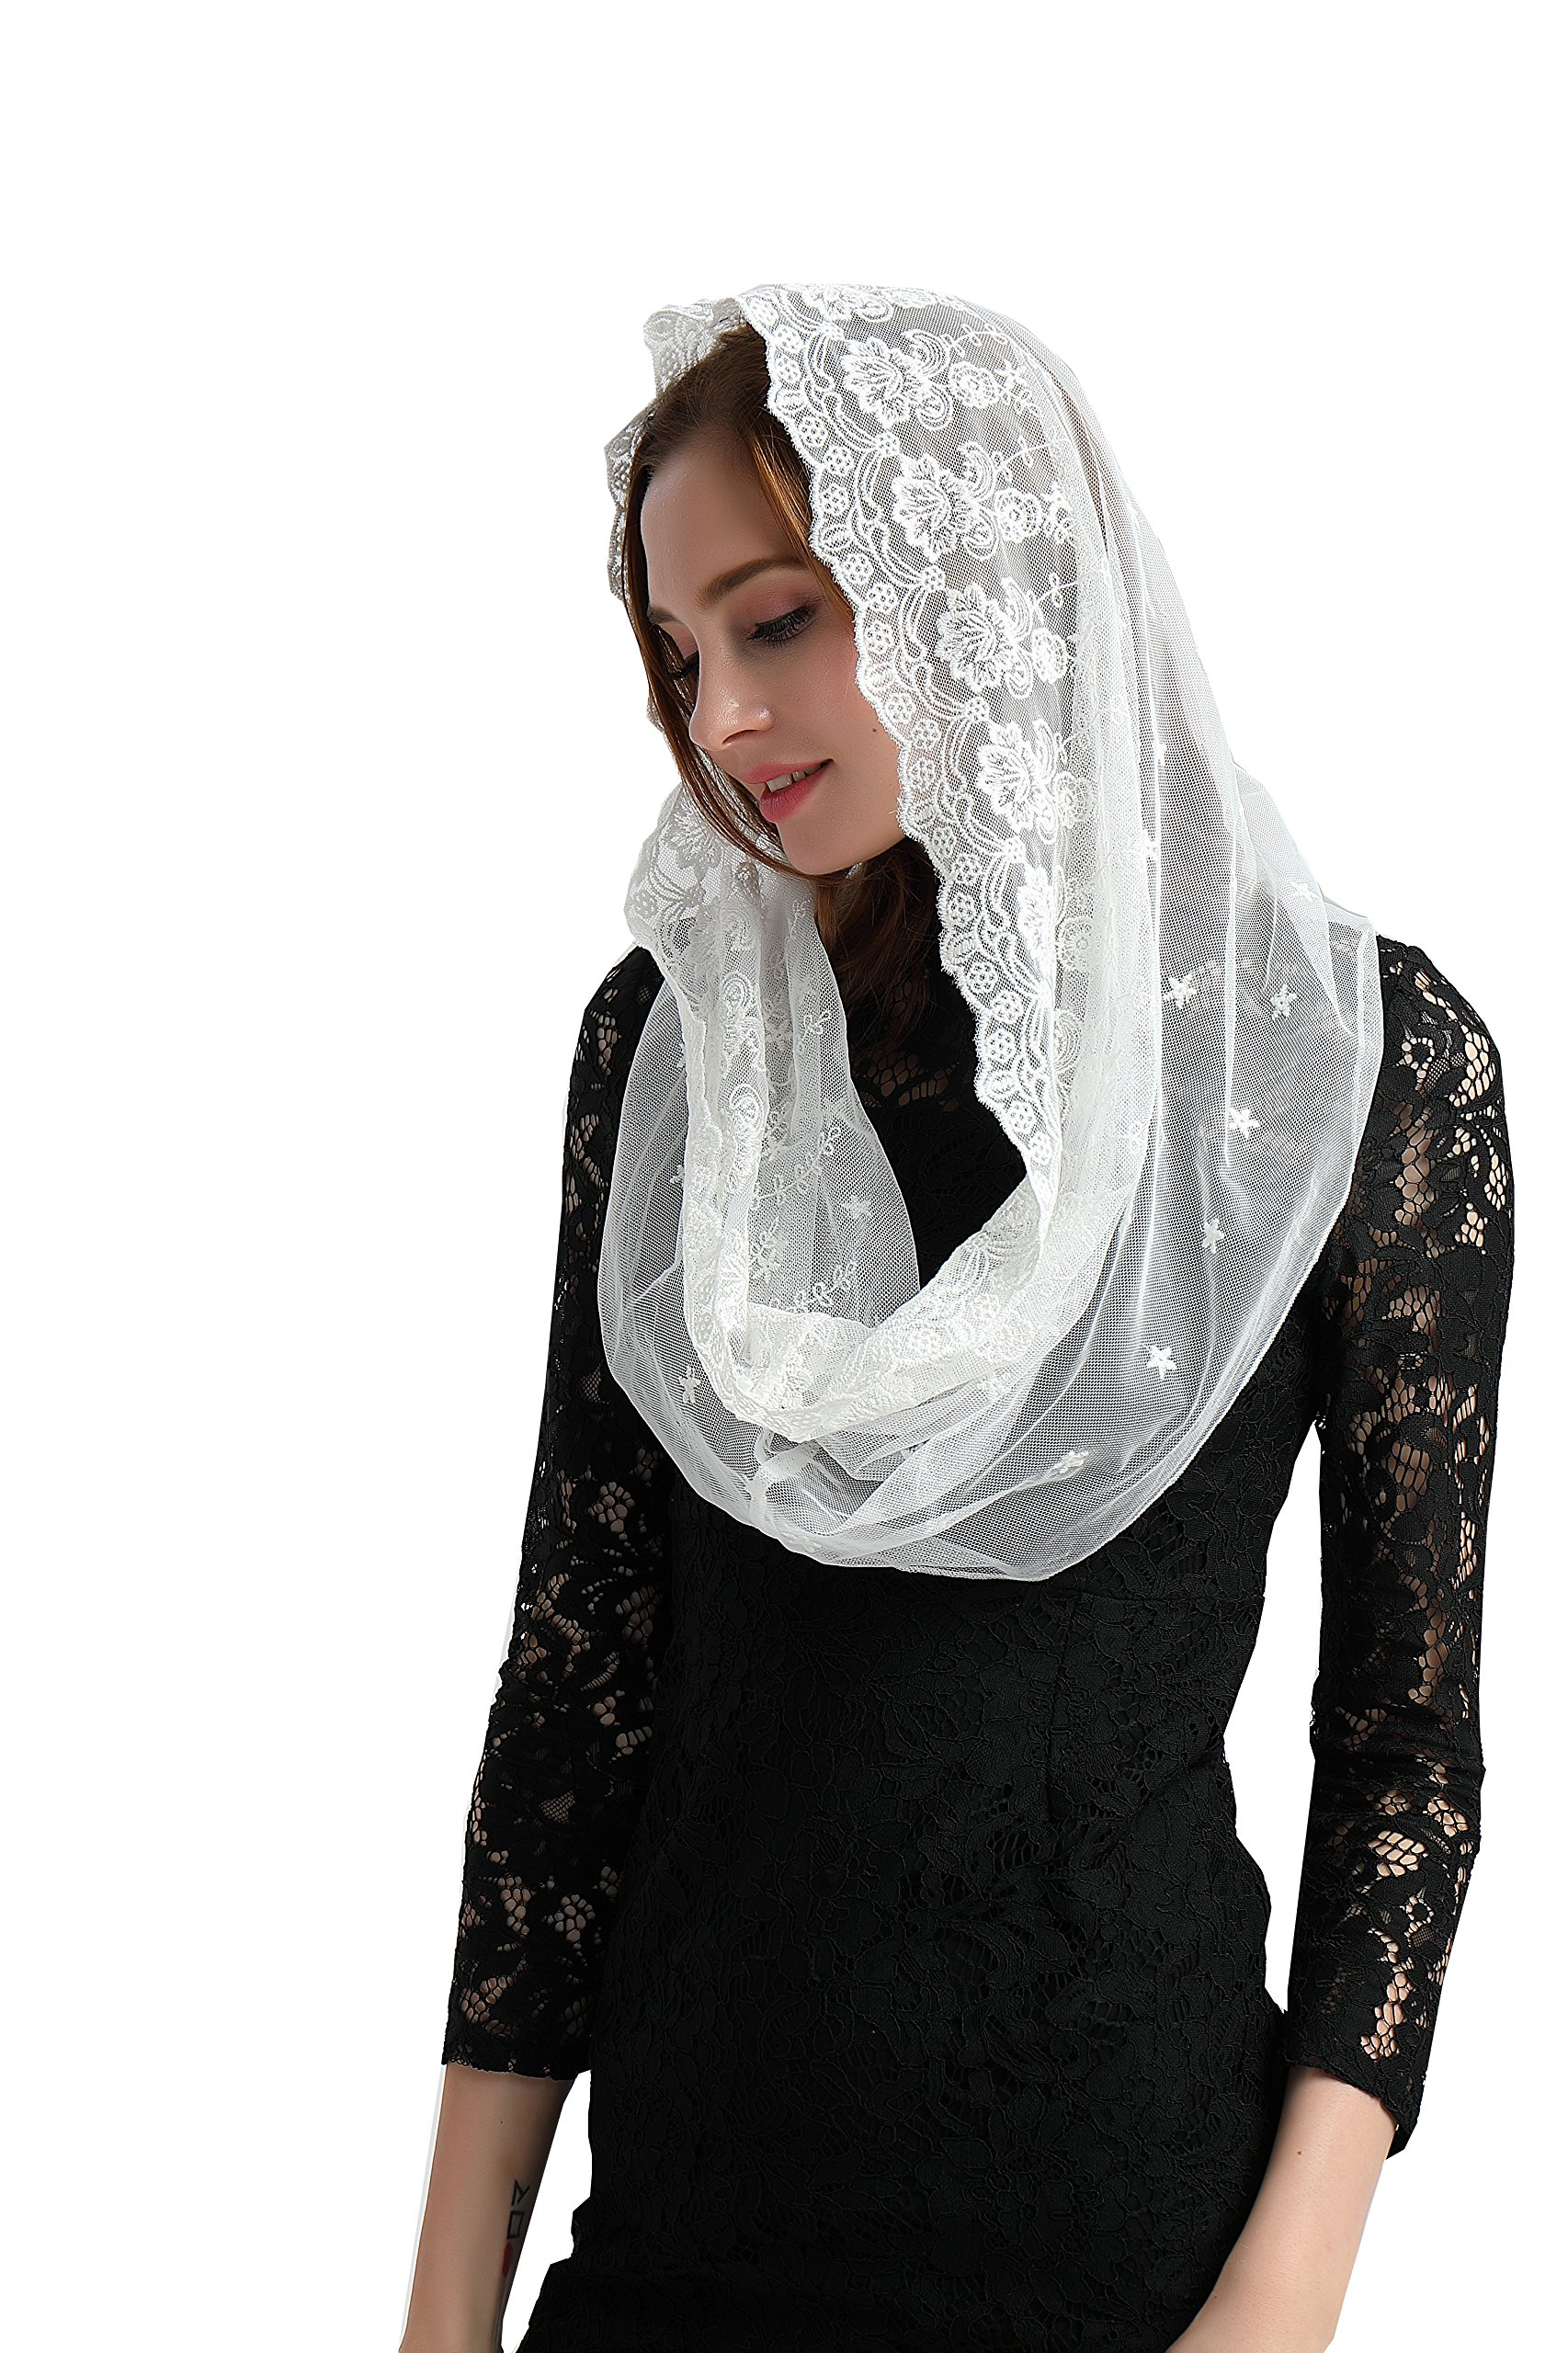 Ivory Embroidered Veil Chapel Veil Catholic Chapel Mantilla Church Veil V01(Style two) (Ivory)